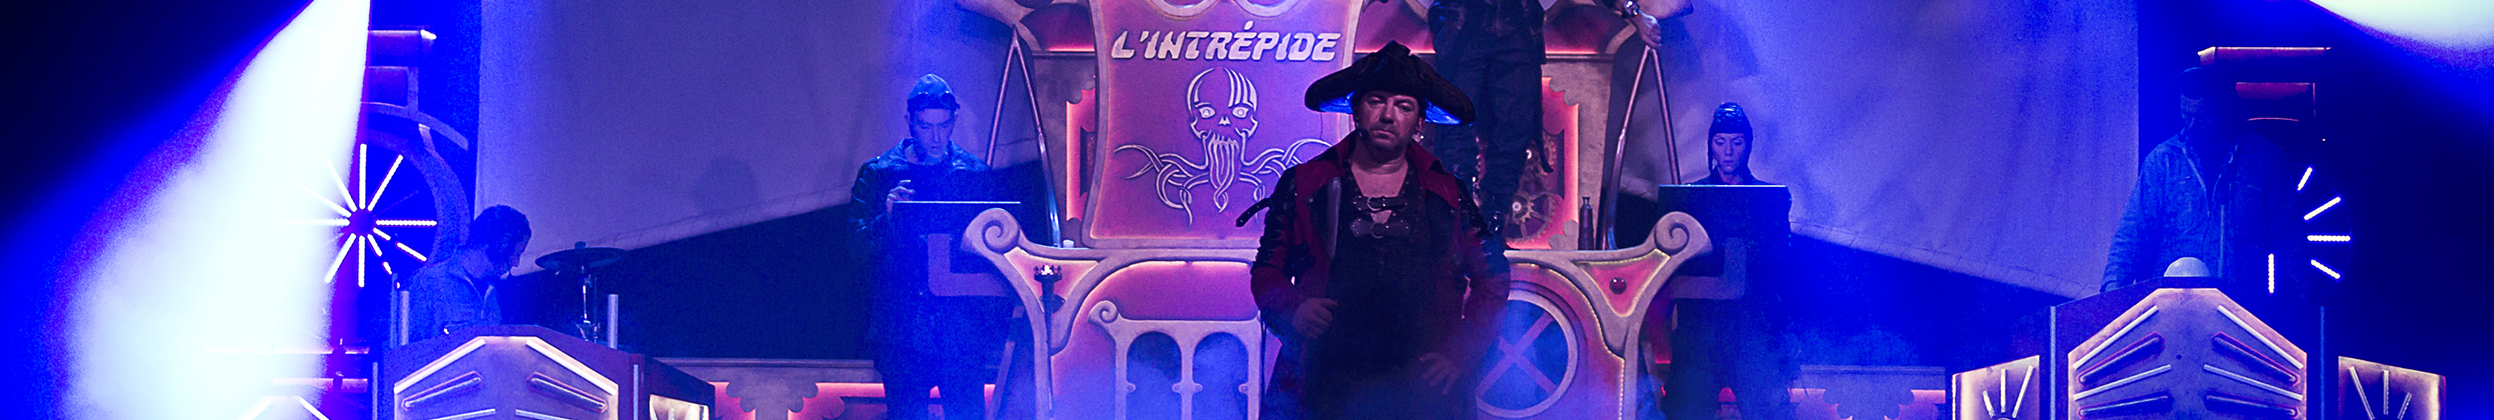 Spectacle familial de pirate, Les Piratonautes